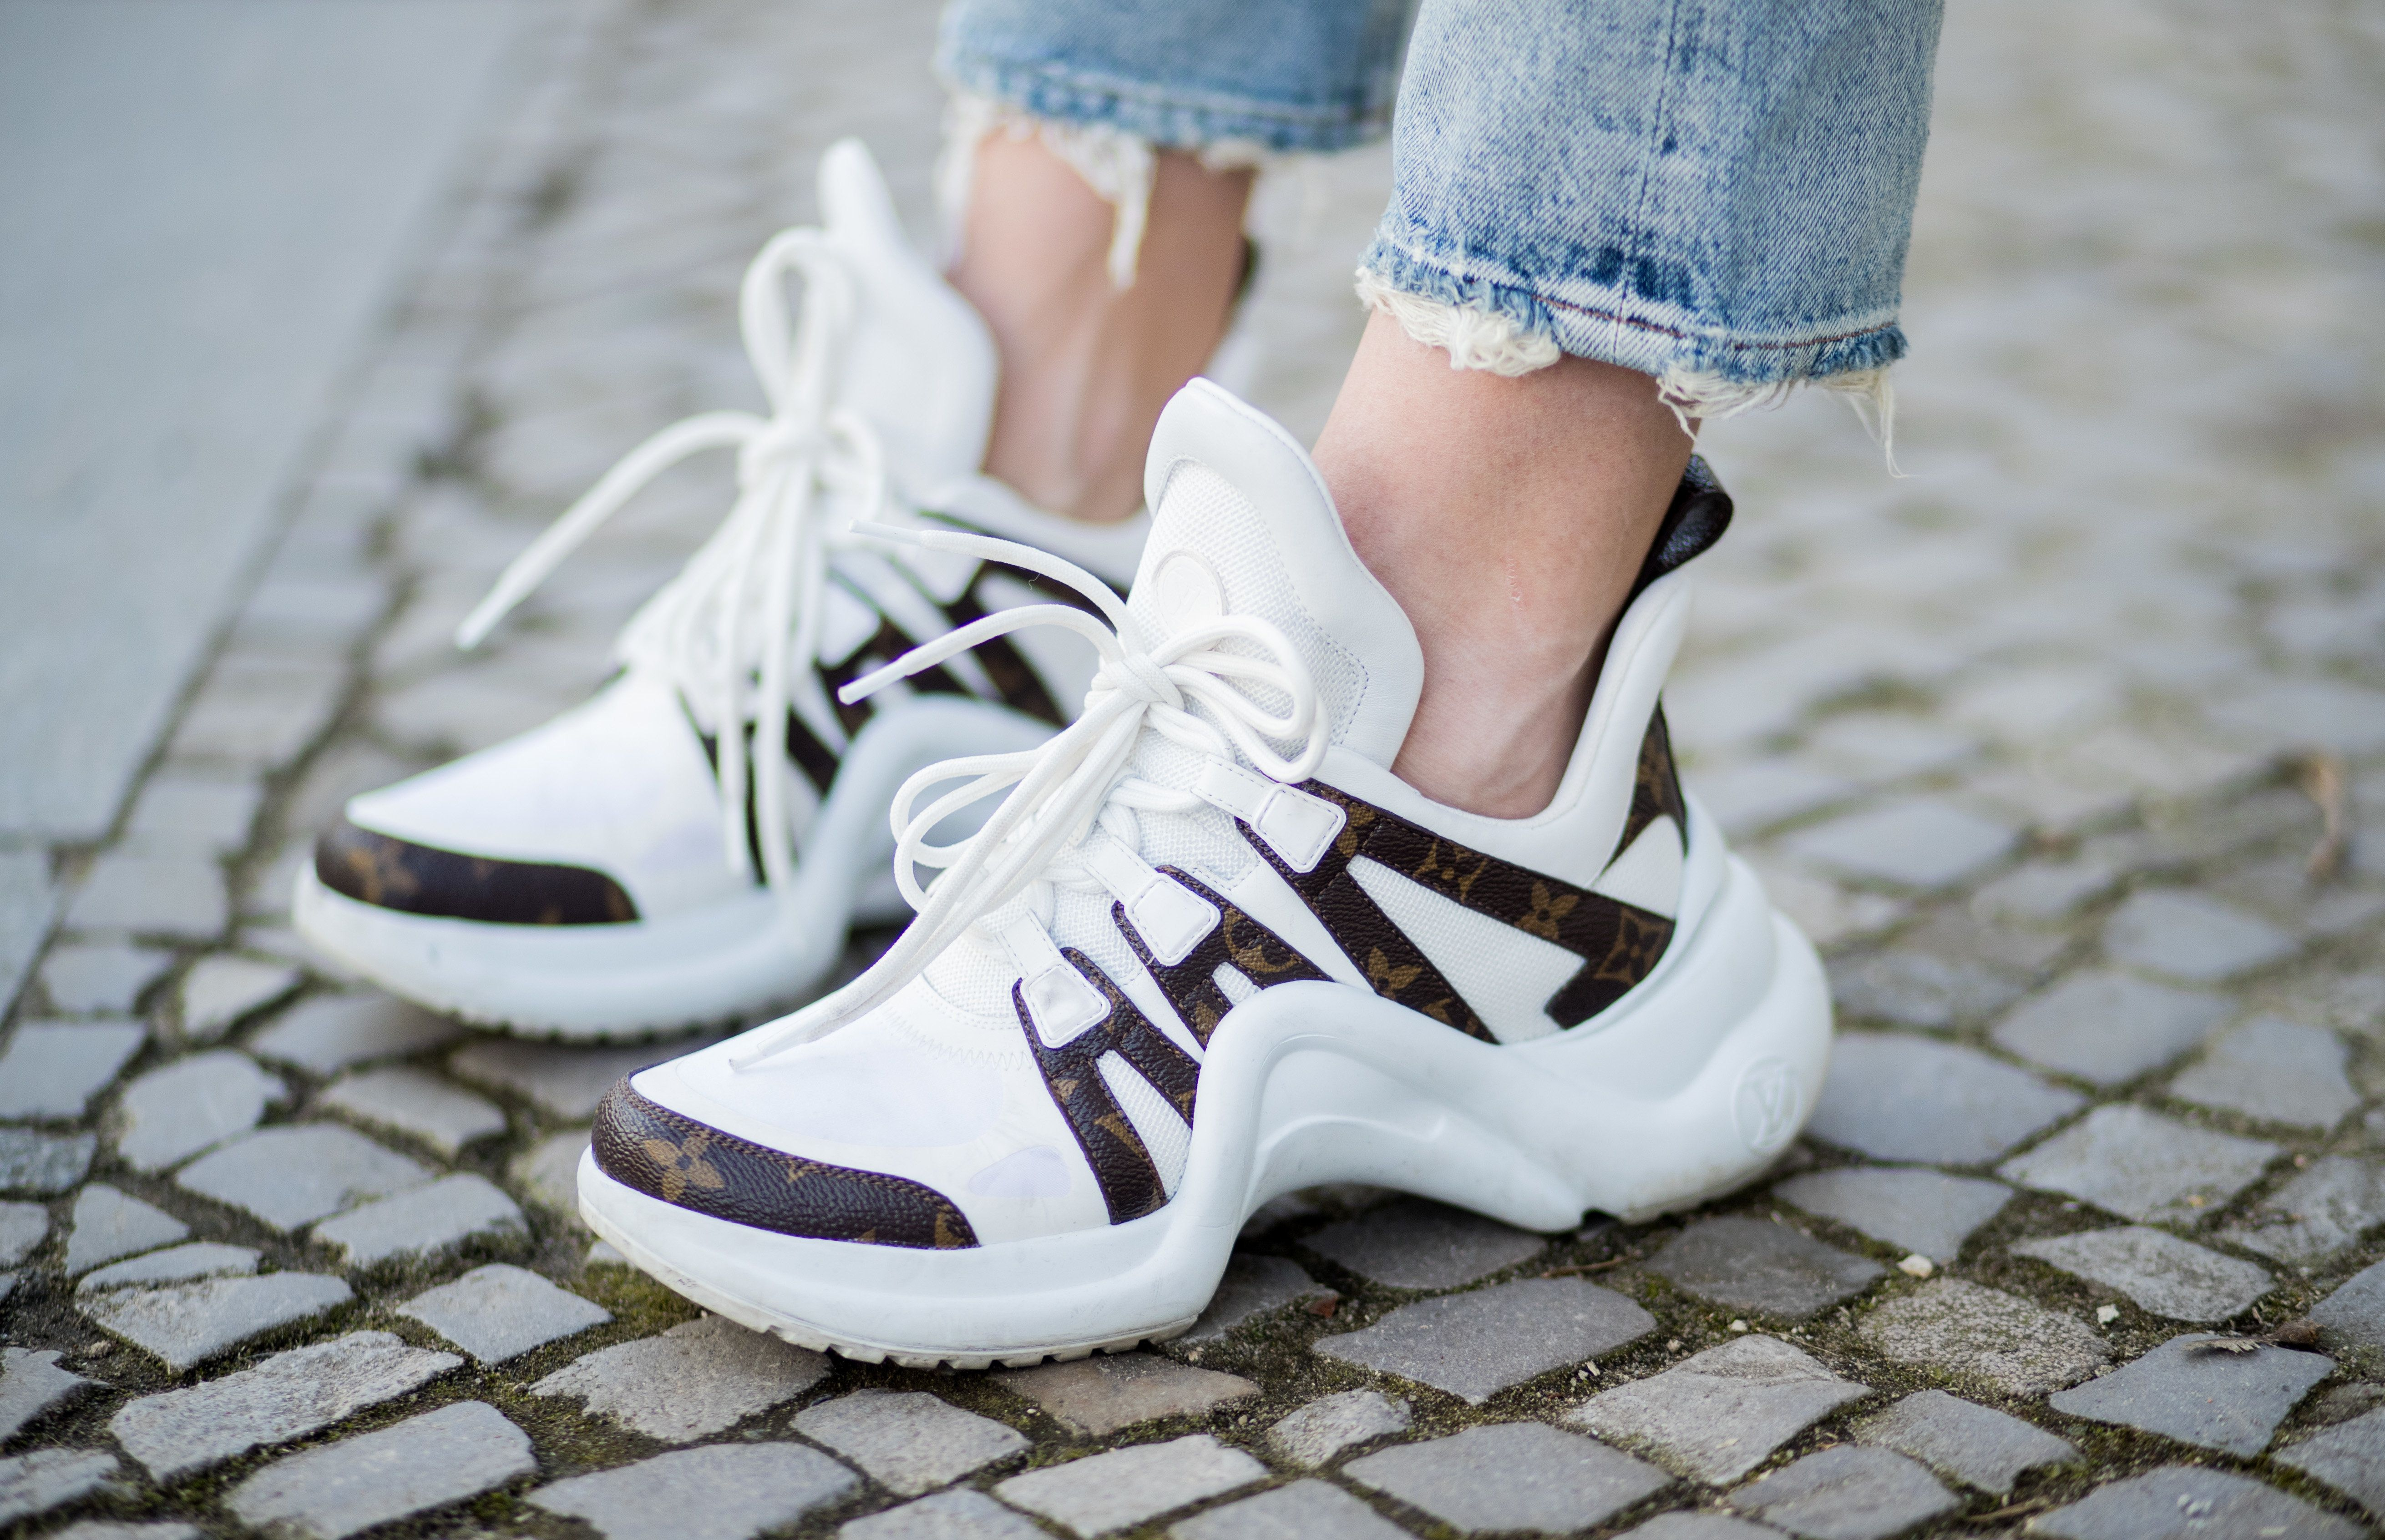 Ugly sneakers are here to stay.